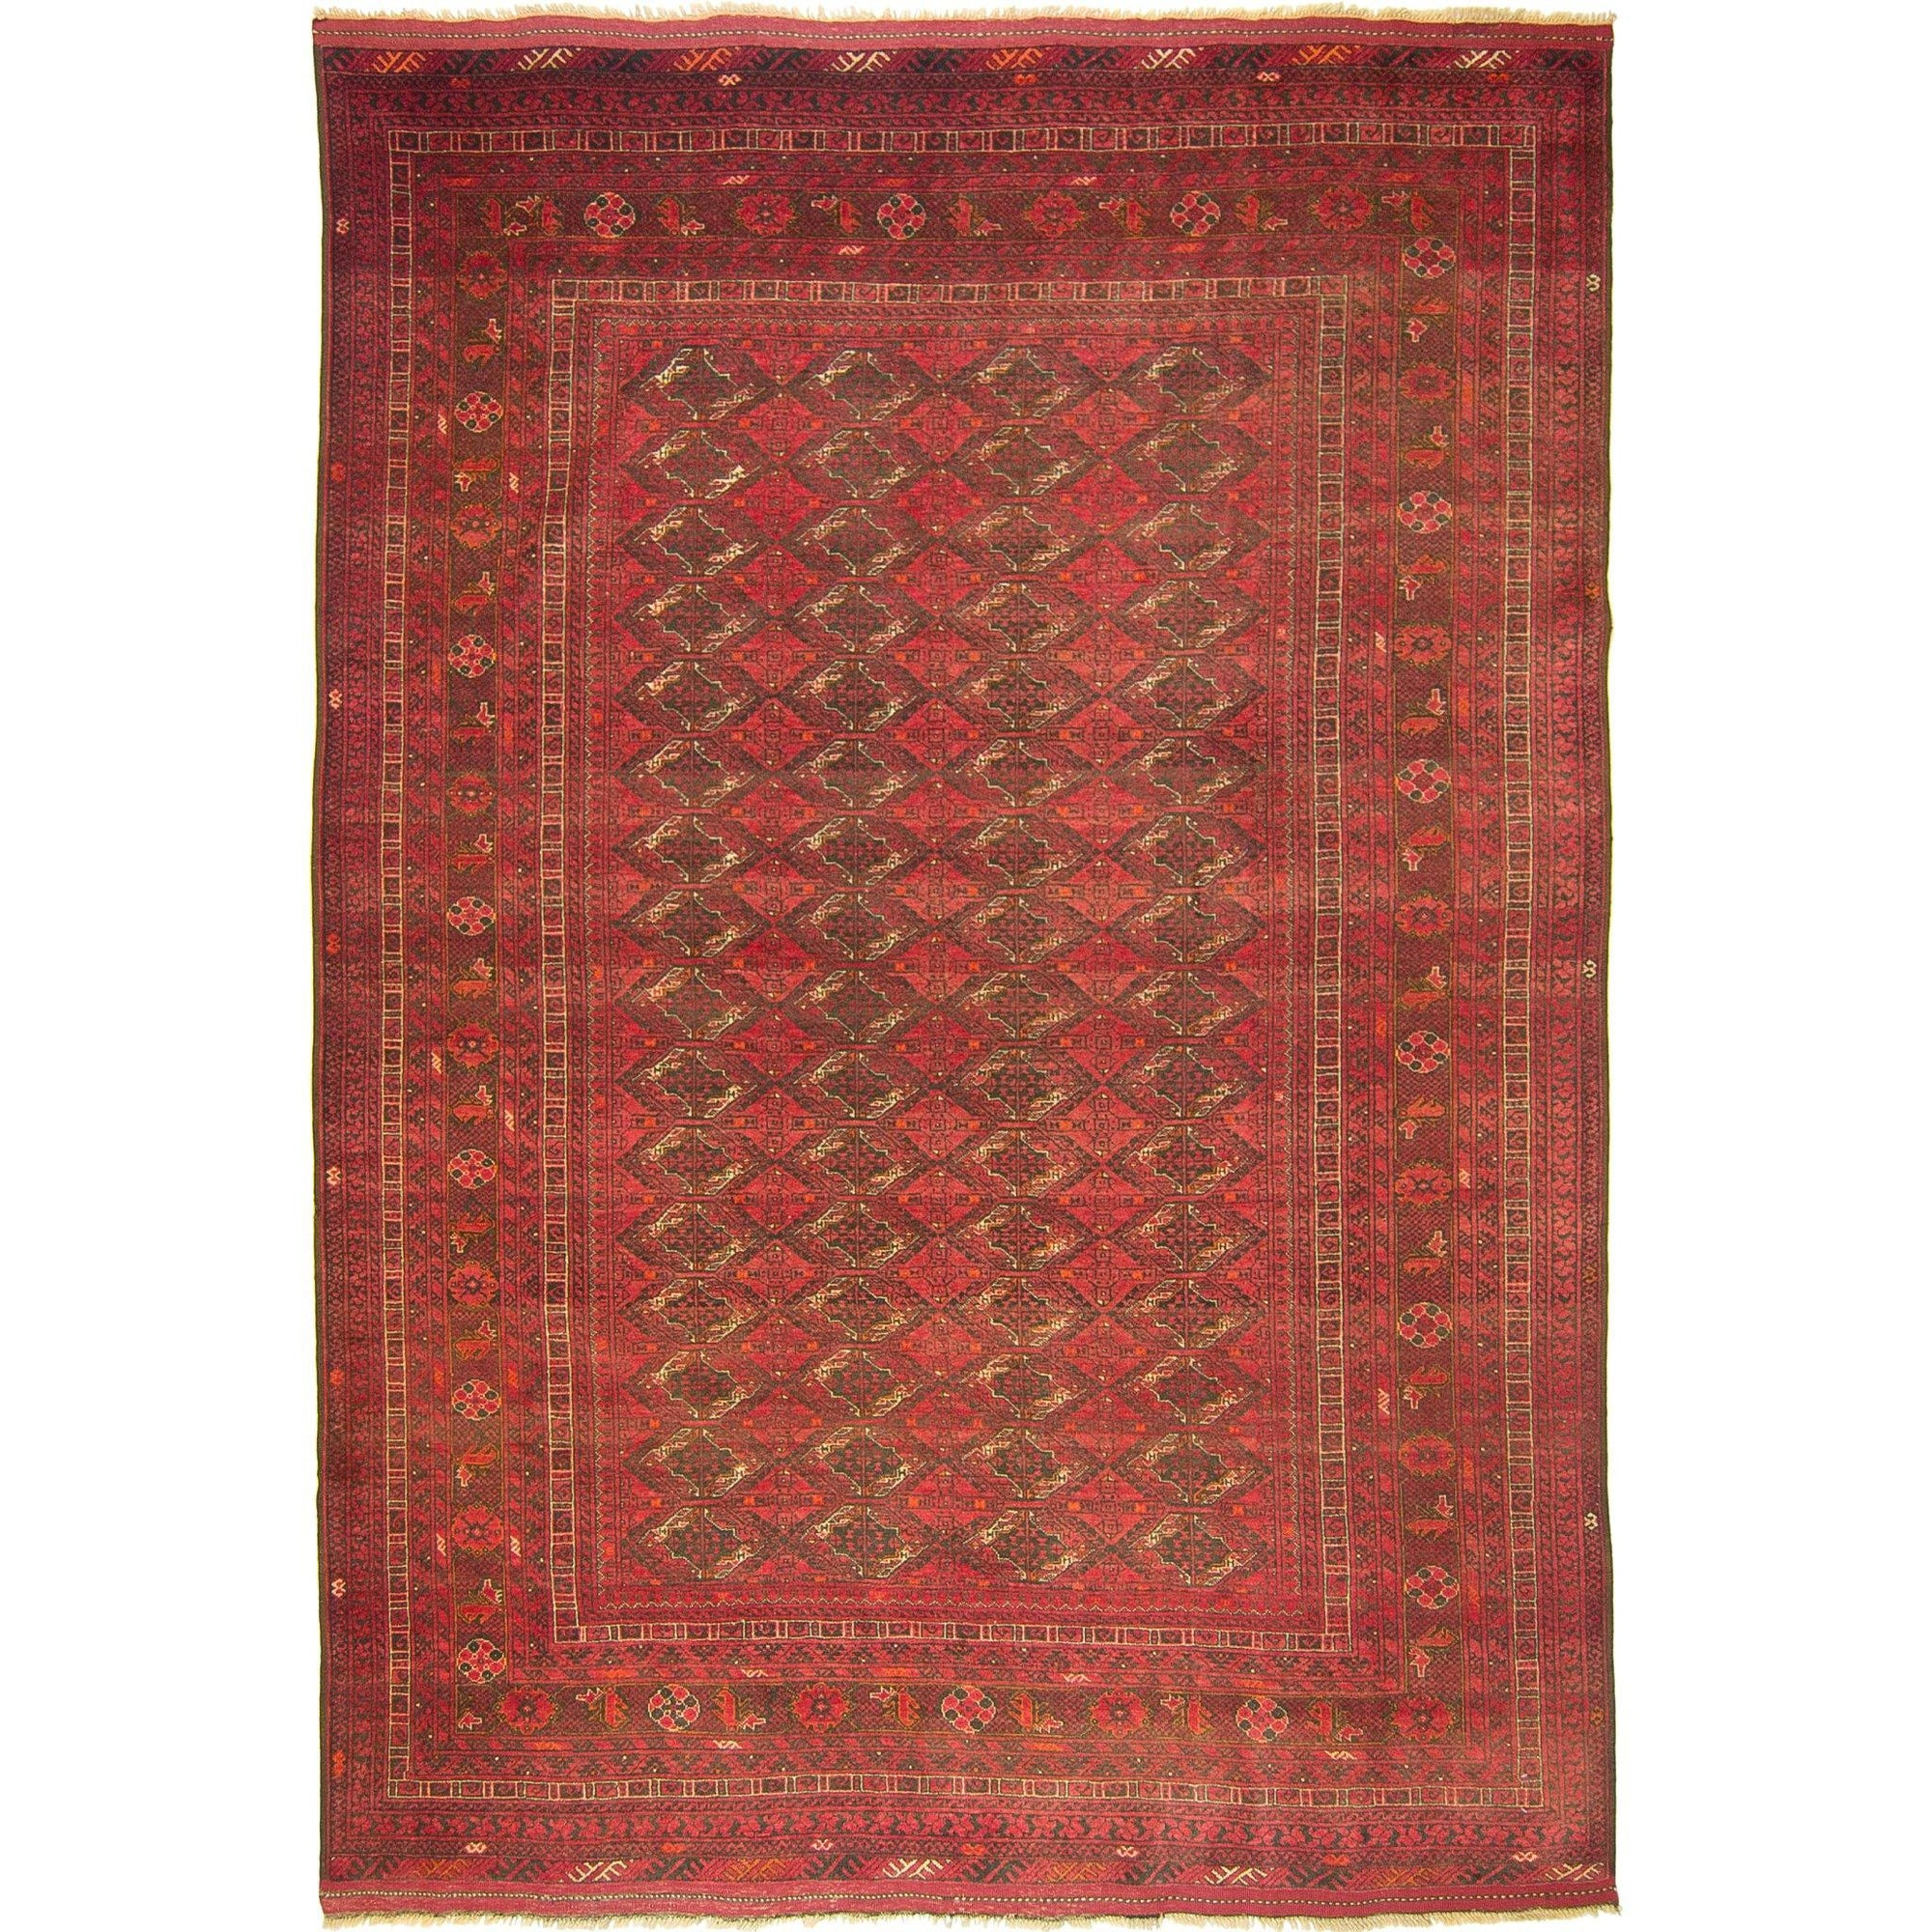 Vintage Hand-knotted Wool Afghan Tribal Turkmen Rug 202cm x  291cm Persian-Rug | House-of-Haghi | NewMarket | Auckland | NZ | Handmade Persian Rugs | Hand Knotted Persian Rugs